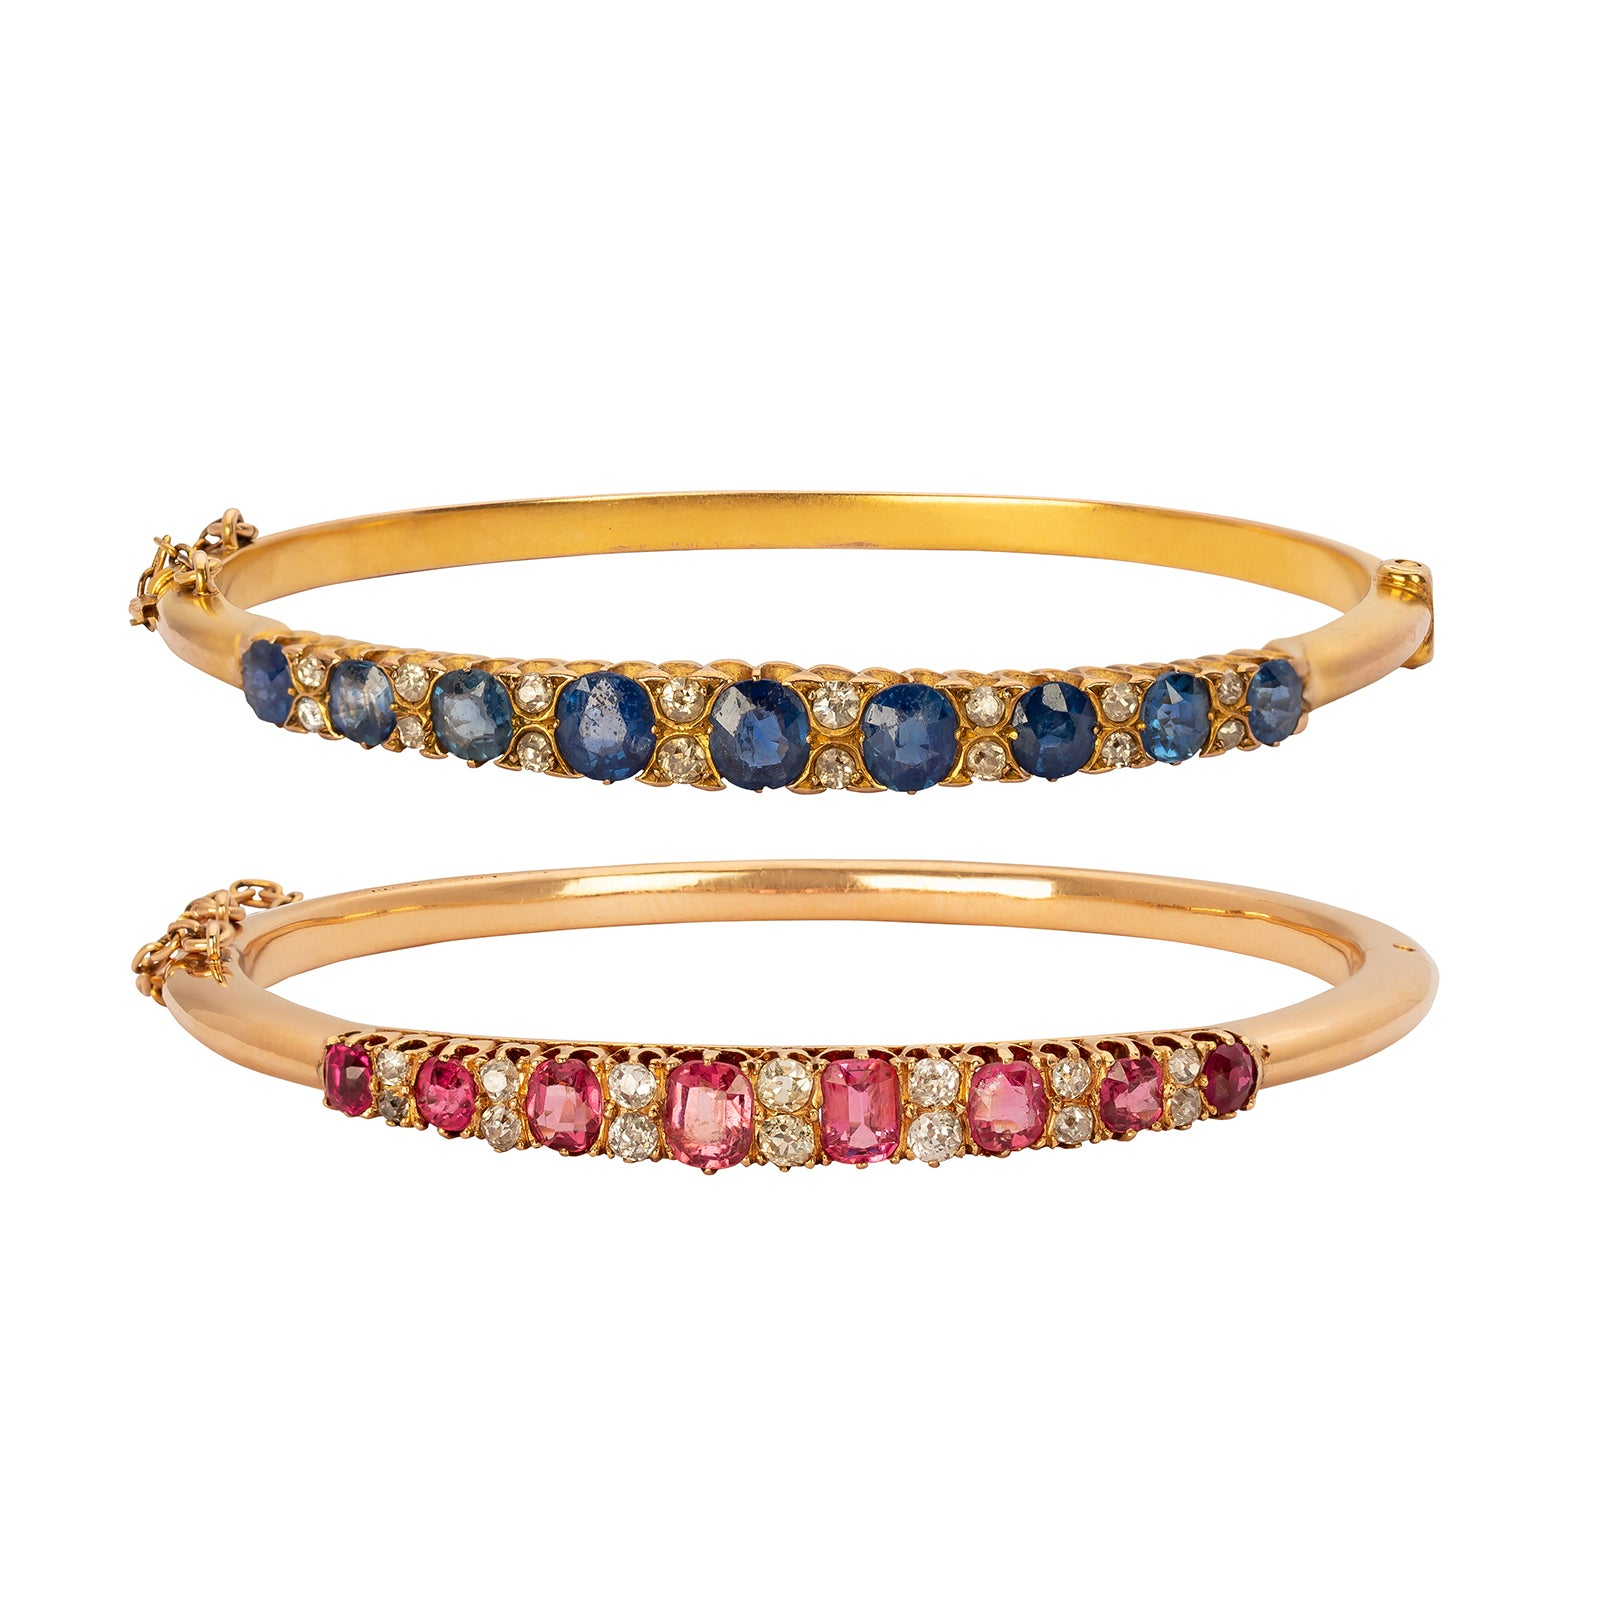 Antique & Vintage Jewelry Pair of Spinel & Sapphire Line Bangle Bracelets - Bracelets - Broken English Jewelry